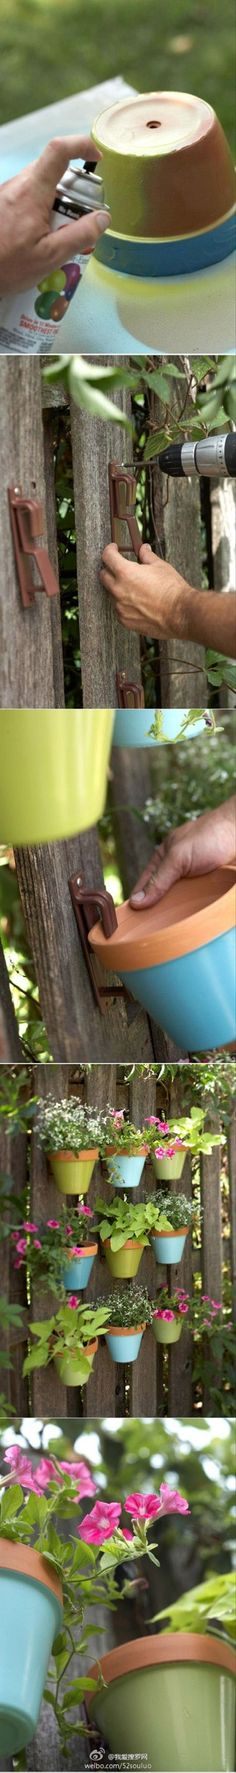 #DIY Vertical Flower Pots